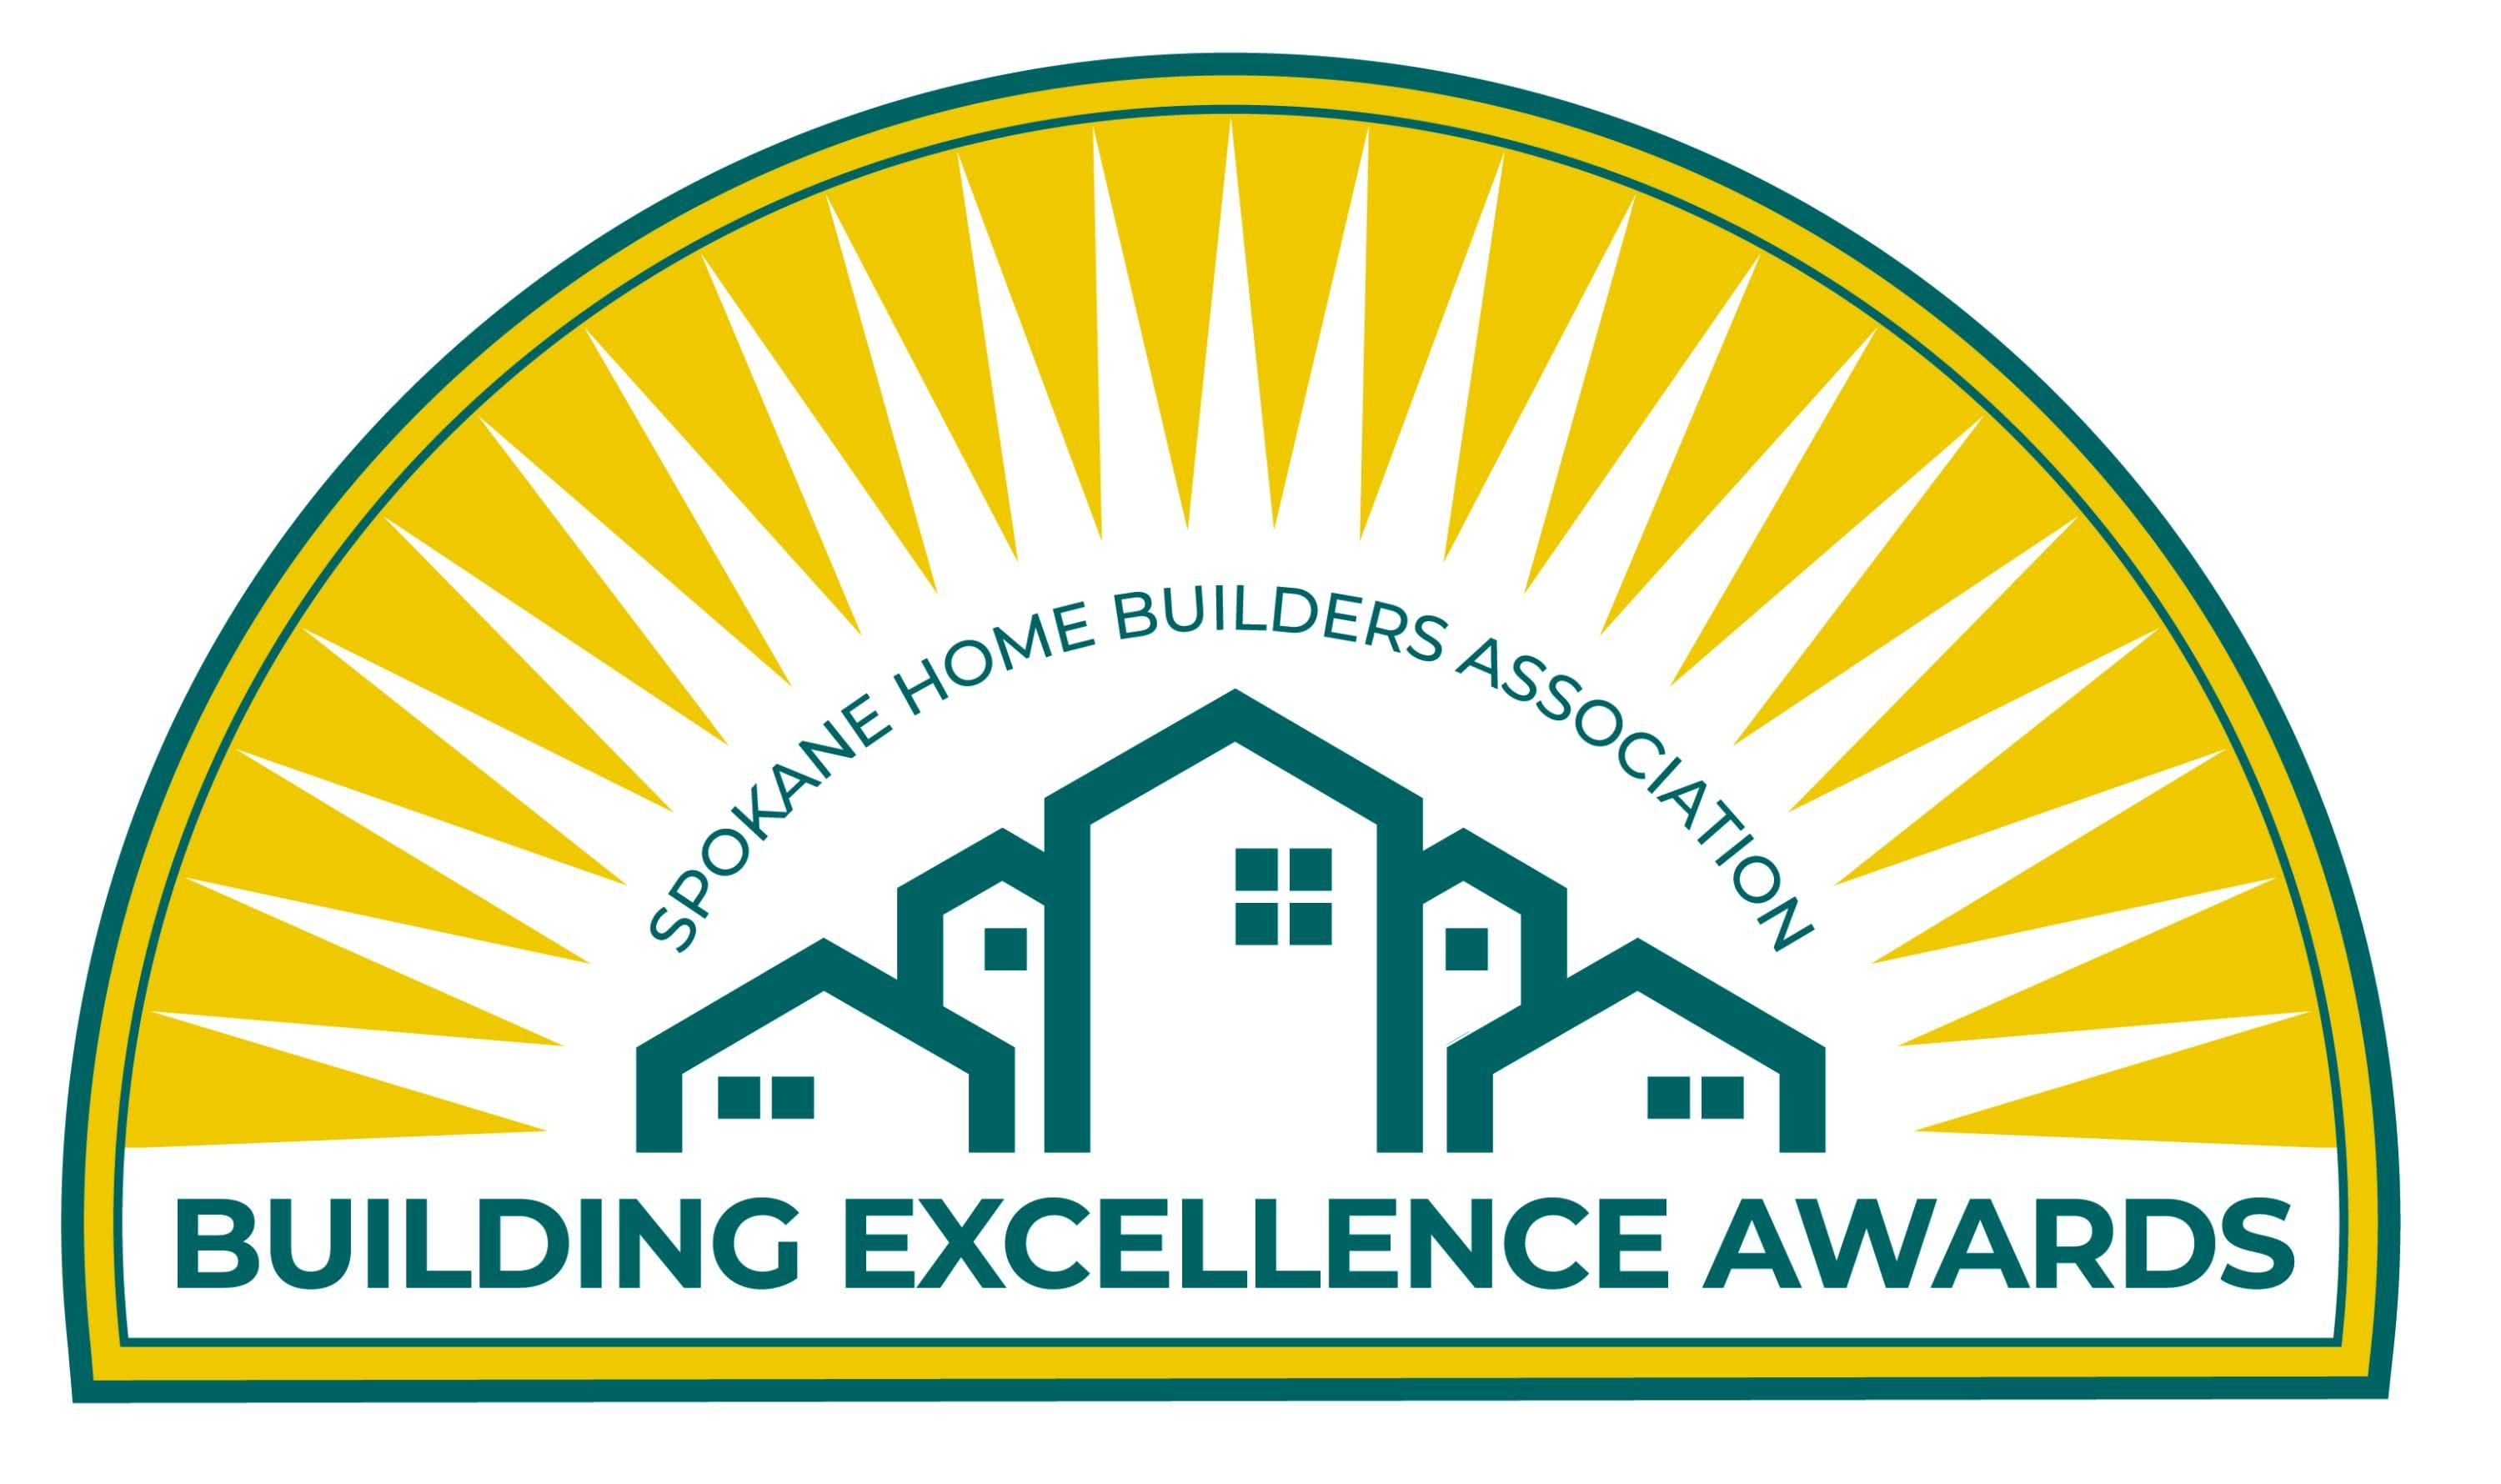 Building Excellence Awards Celebration